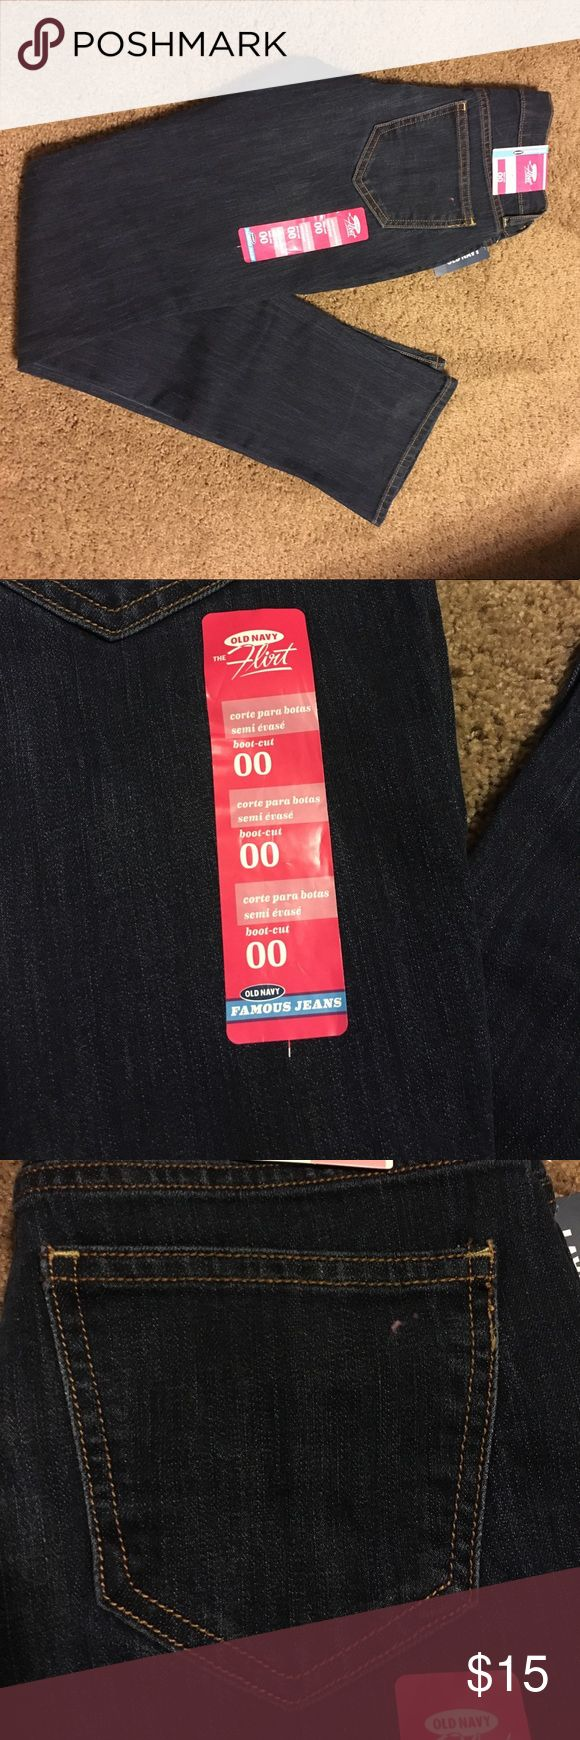 Old navy flirt jeans Never worn. Brand new women's jeans Old Navy Jeans Boot Cut